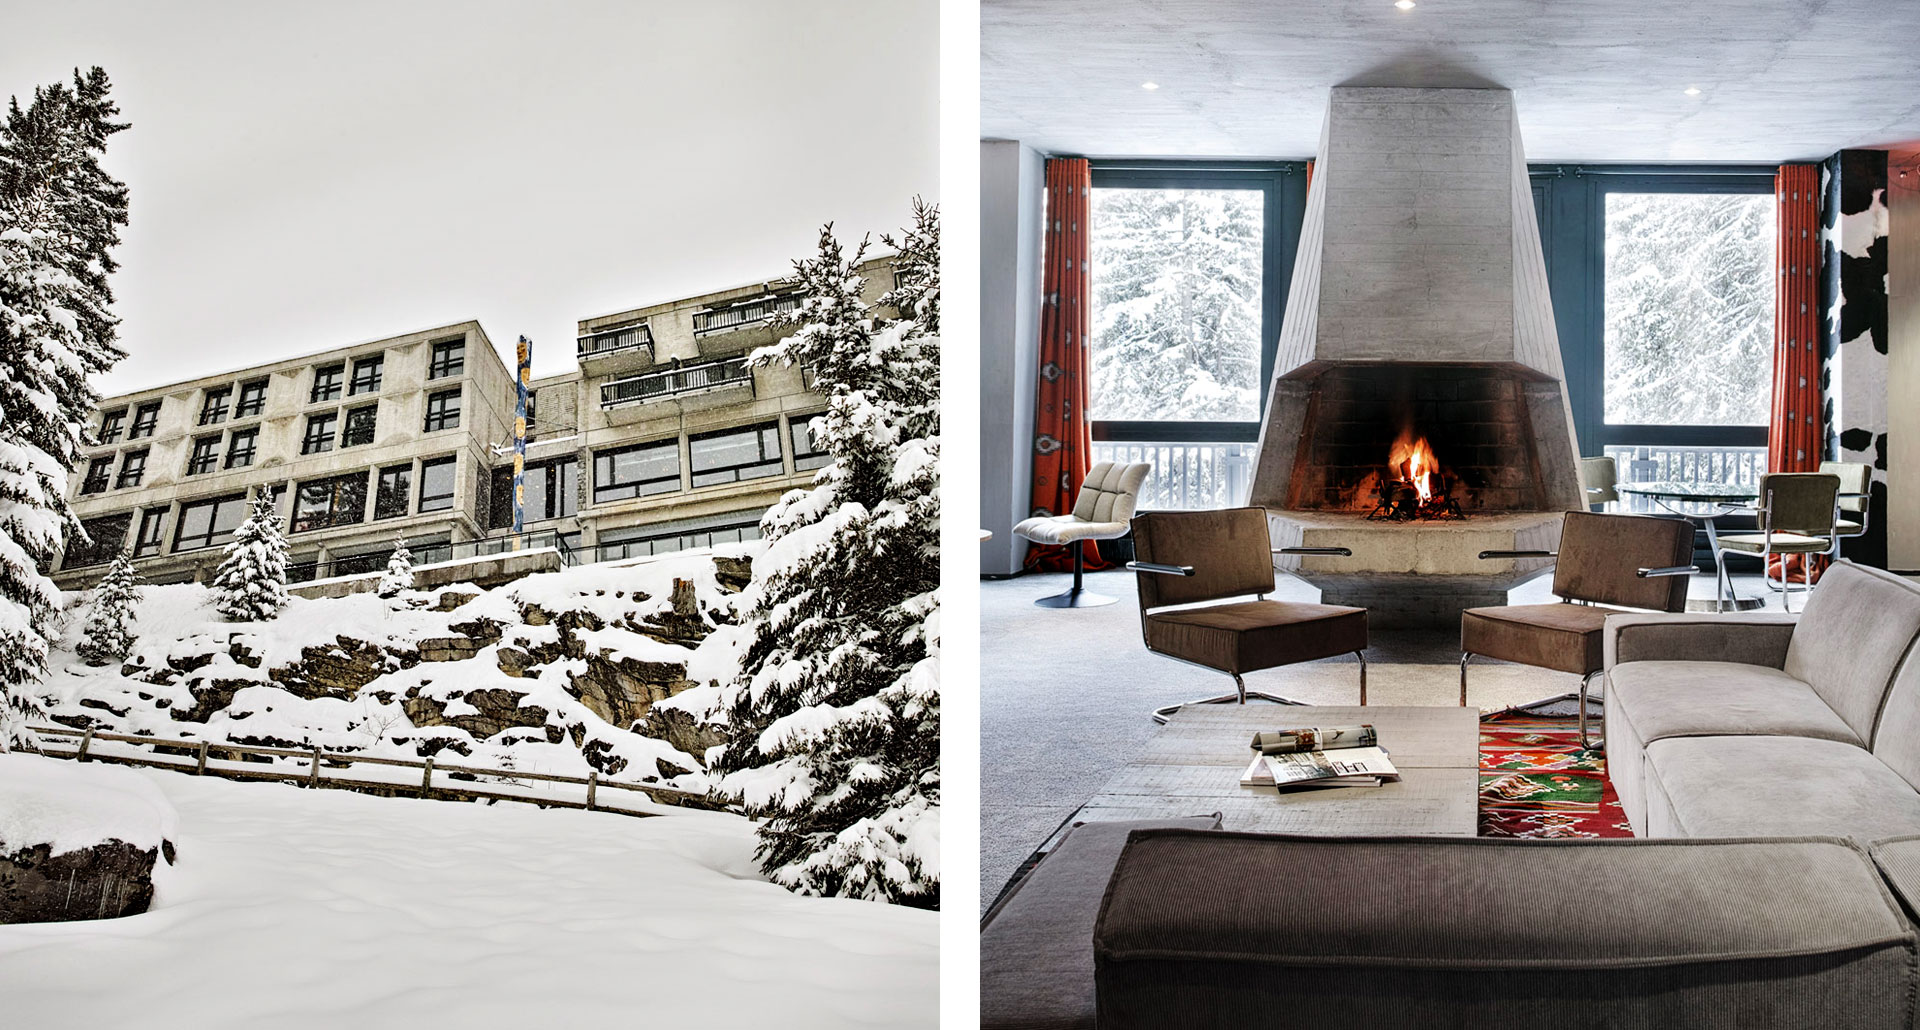 TERMINAL NEIGE TOTEM Hotel - boutique hotel in Alps